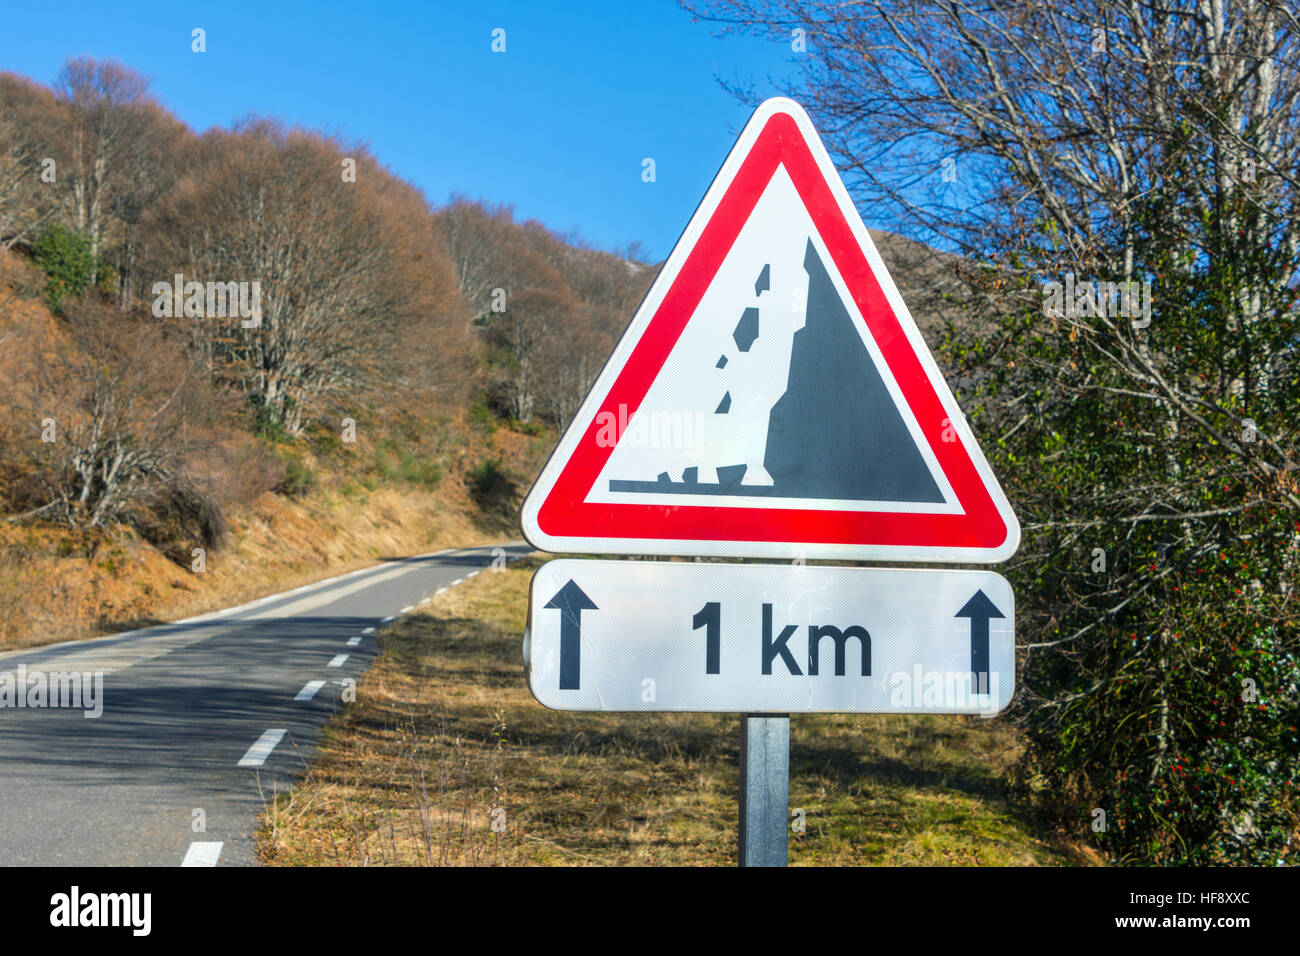 Falling rocks 1km triangular road sign with blue sky - Stock Image